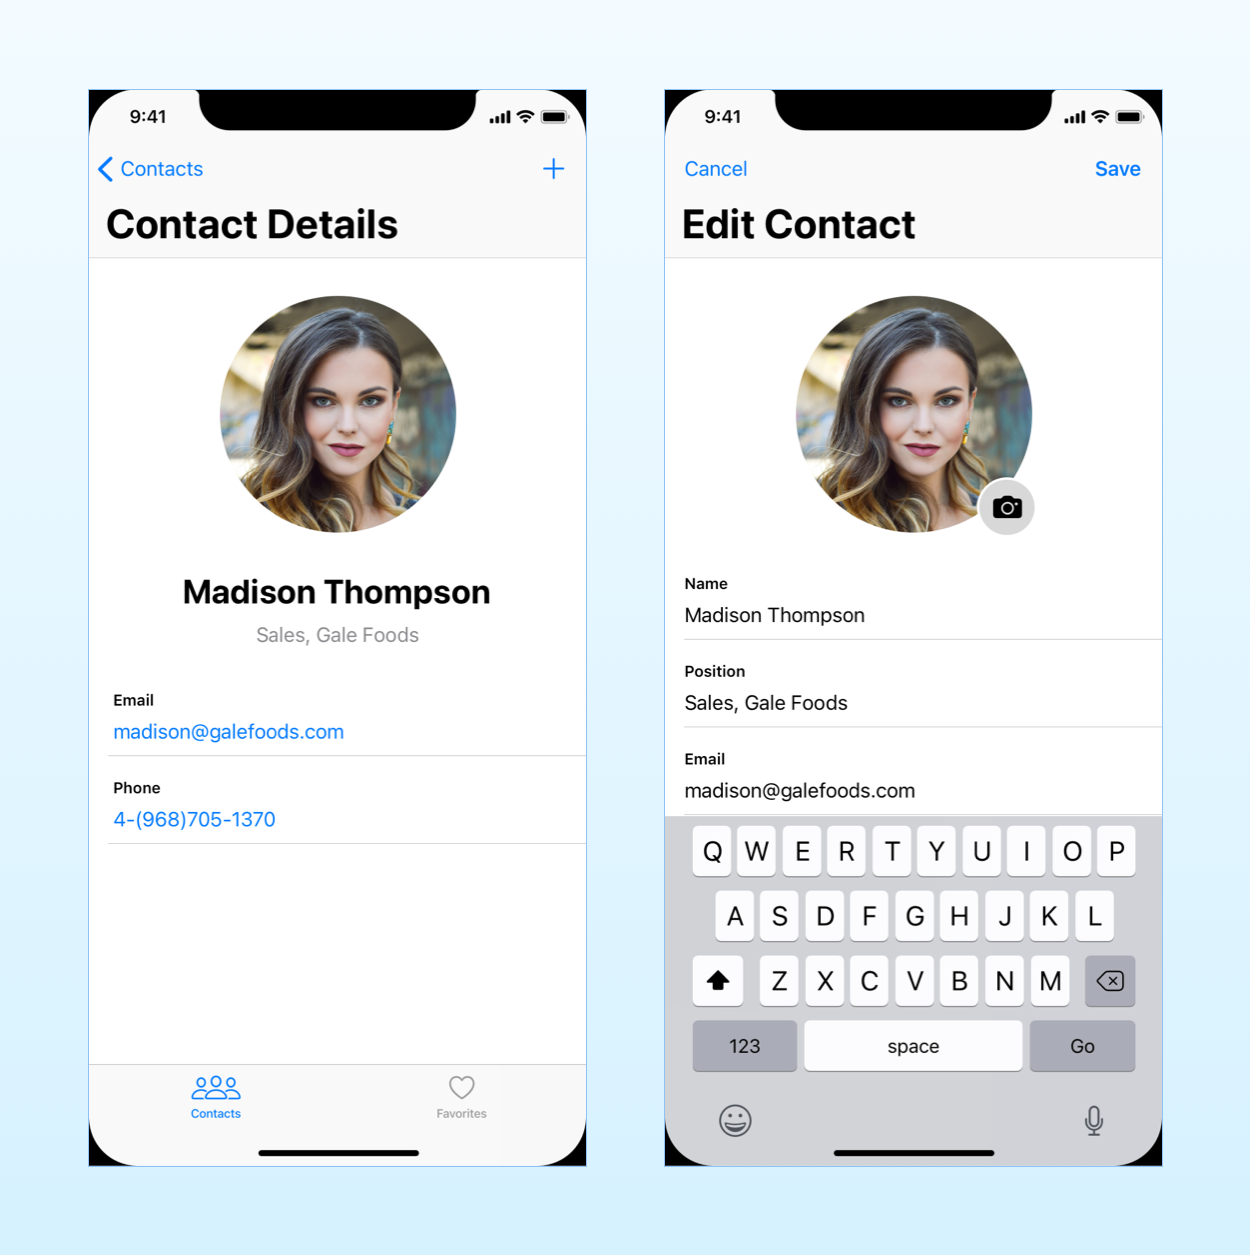 the mockup of the contact sample app we will build